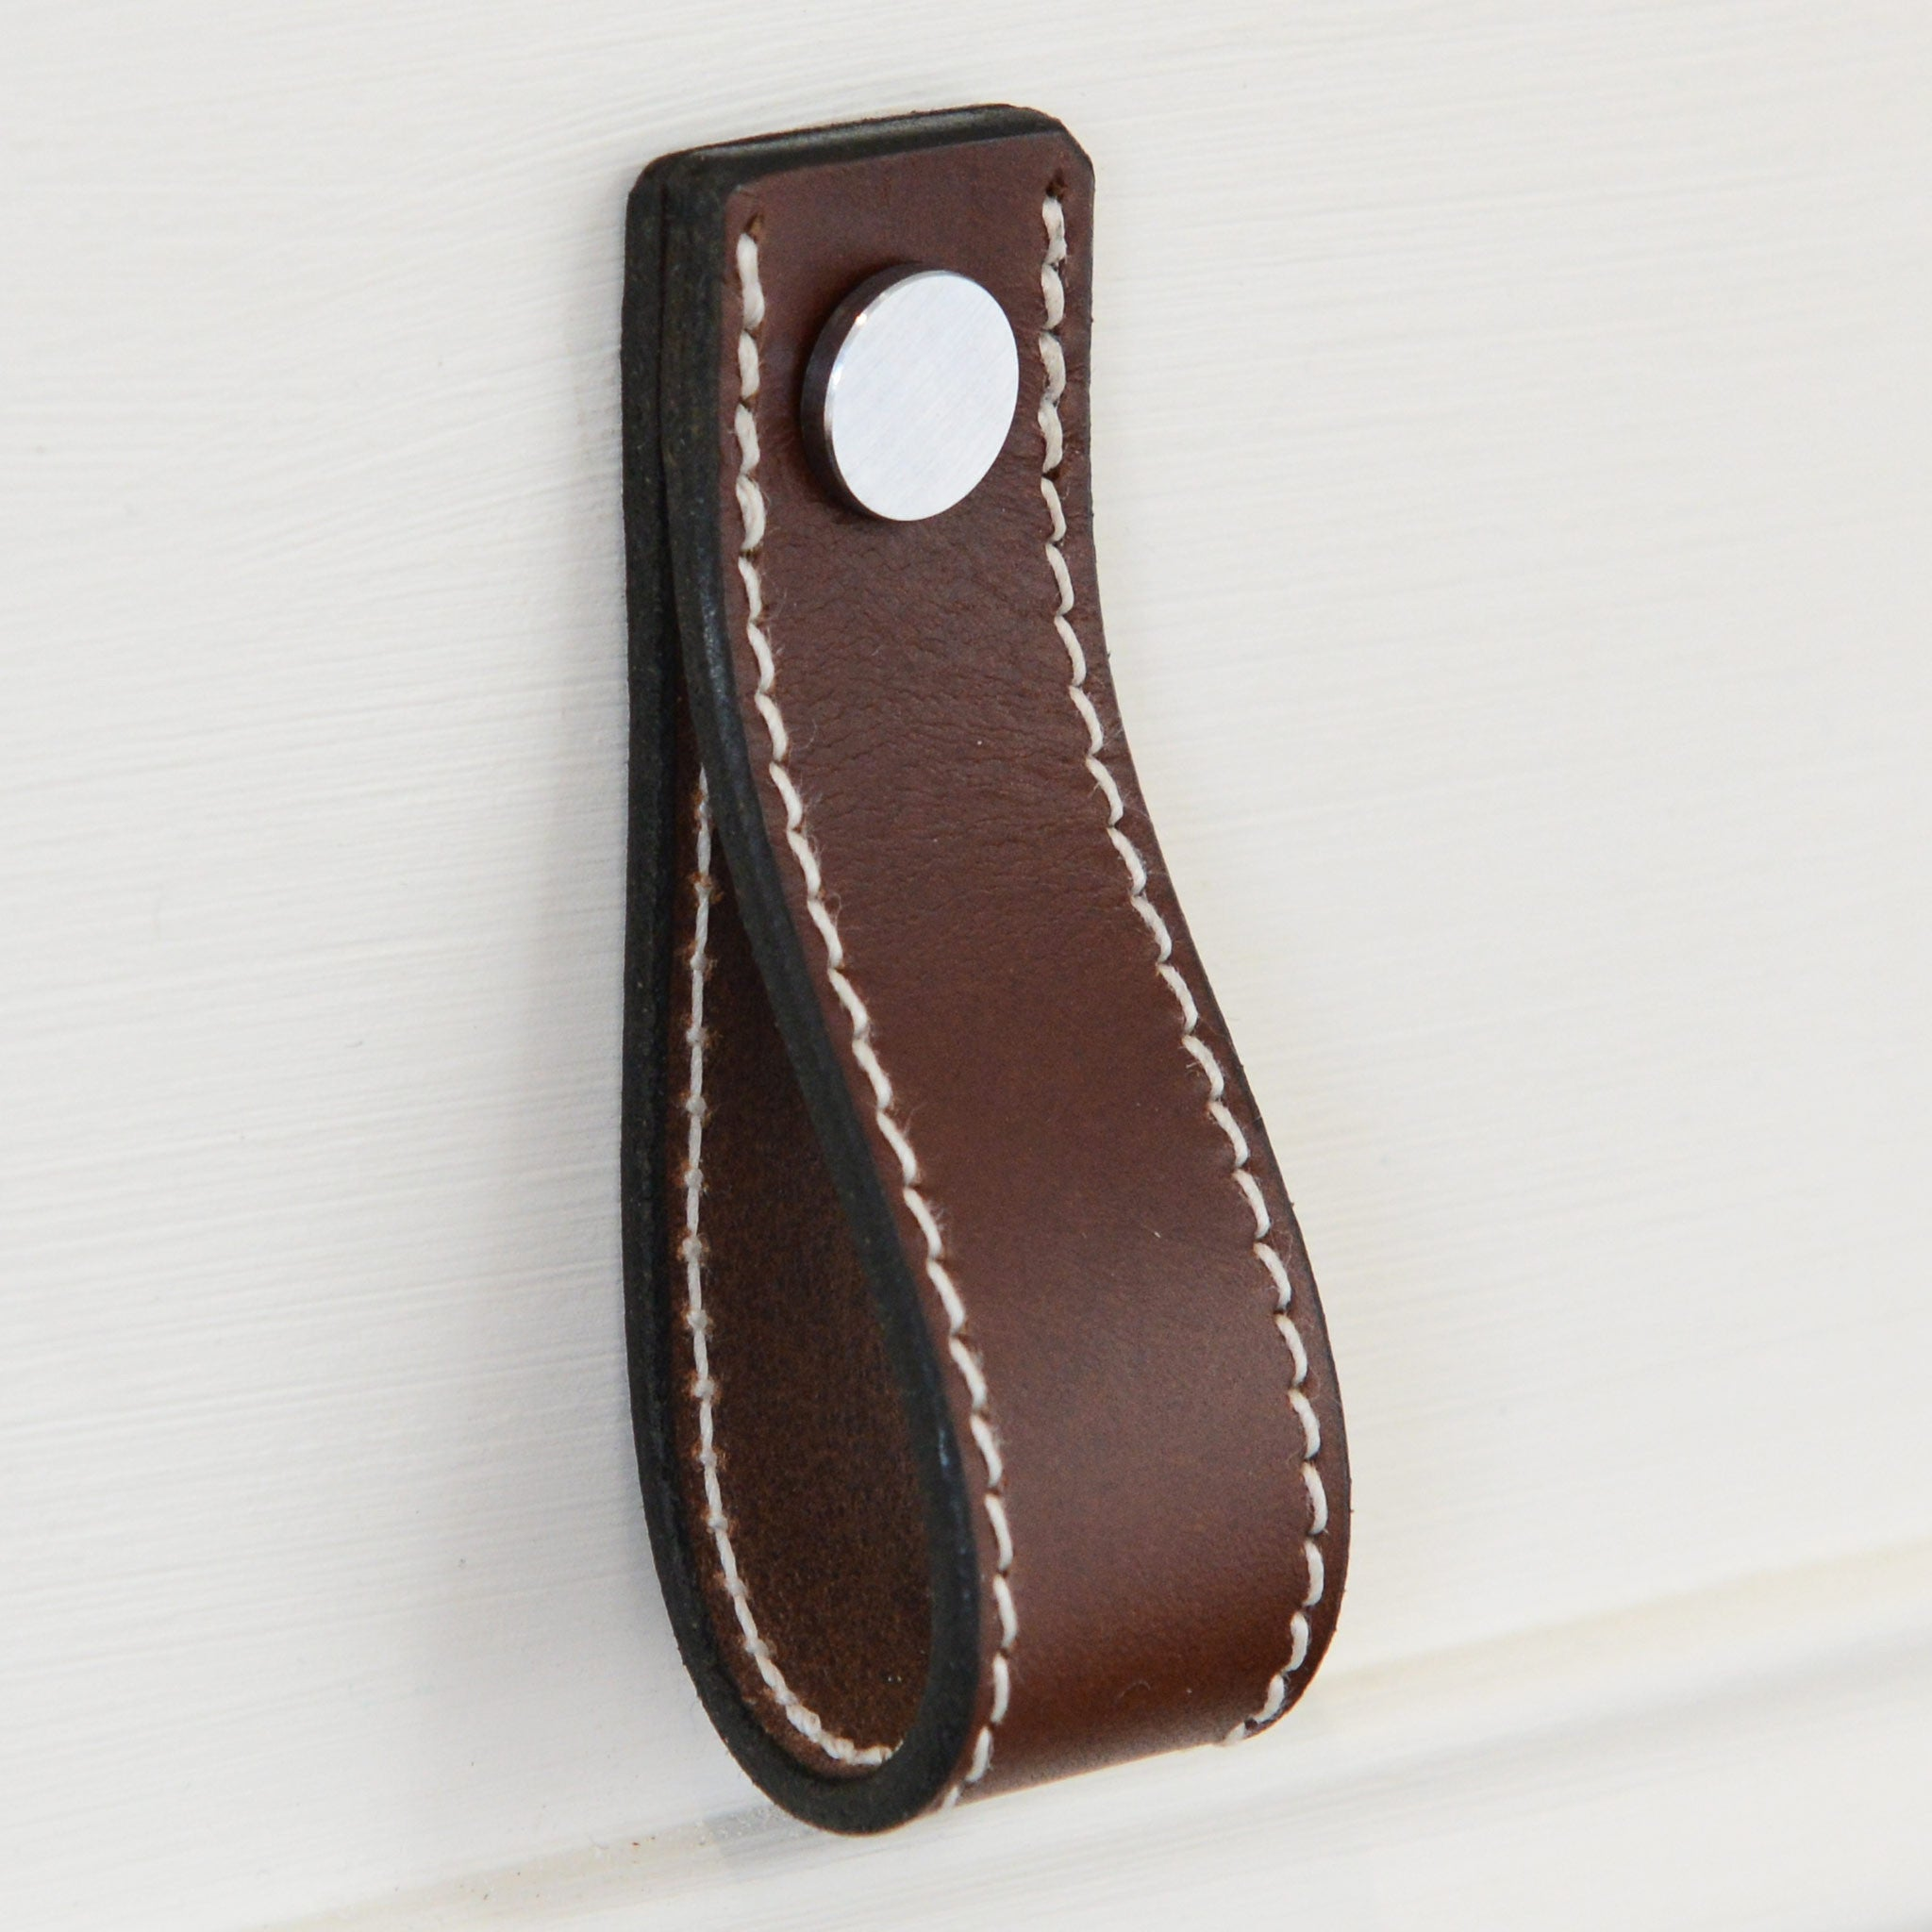 Lourdais Folded Brown Leather Door Pull with Satin Chrome Fixings